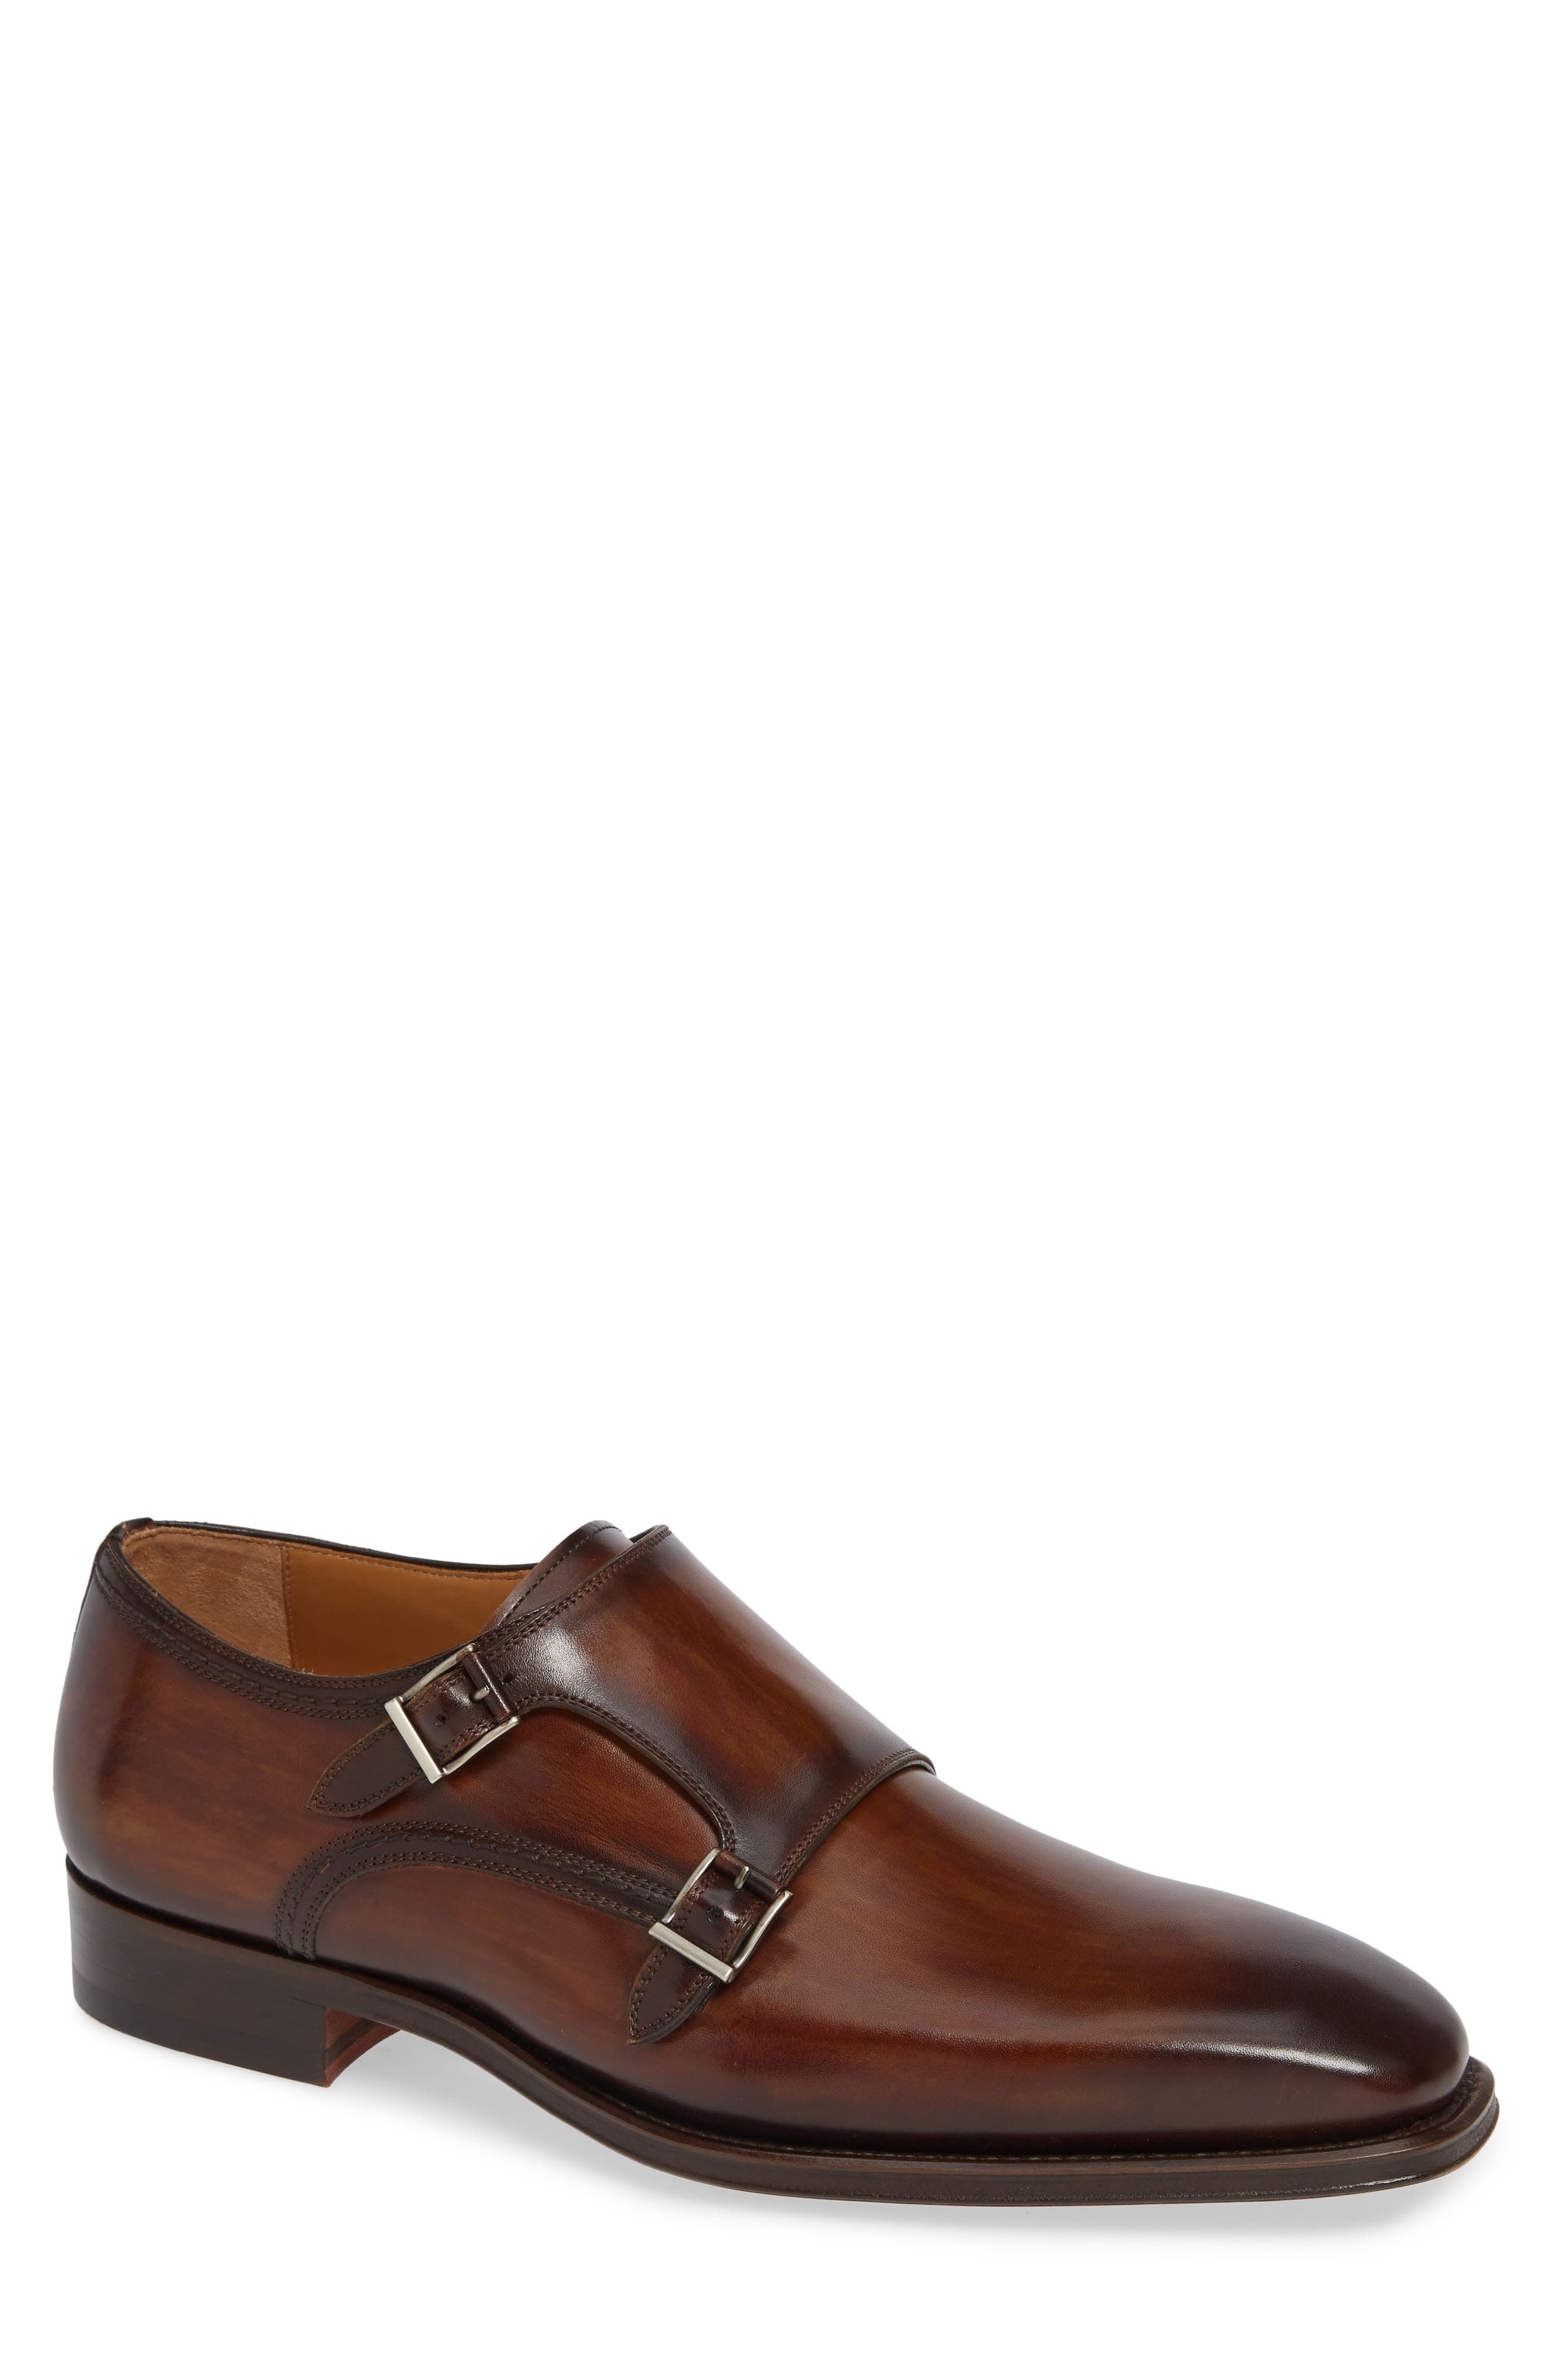 Landon Double Strap Monk Shoe,                             Main thumbnail 1, color,                             TOBACCO LEATHER